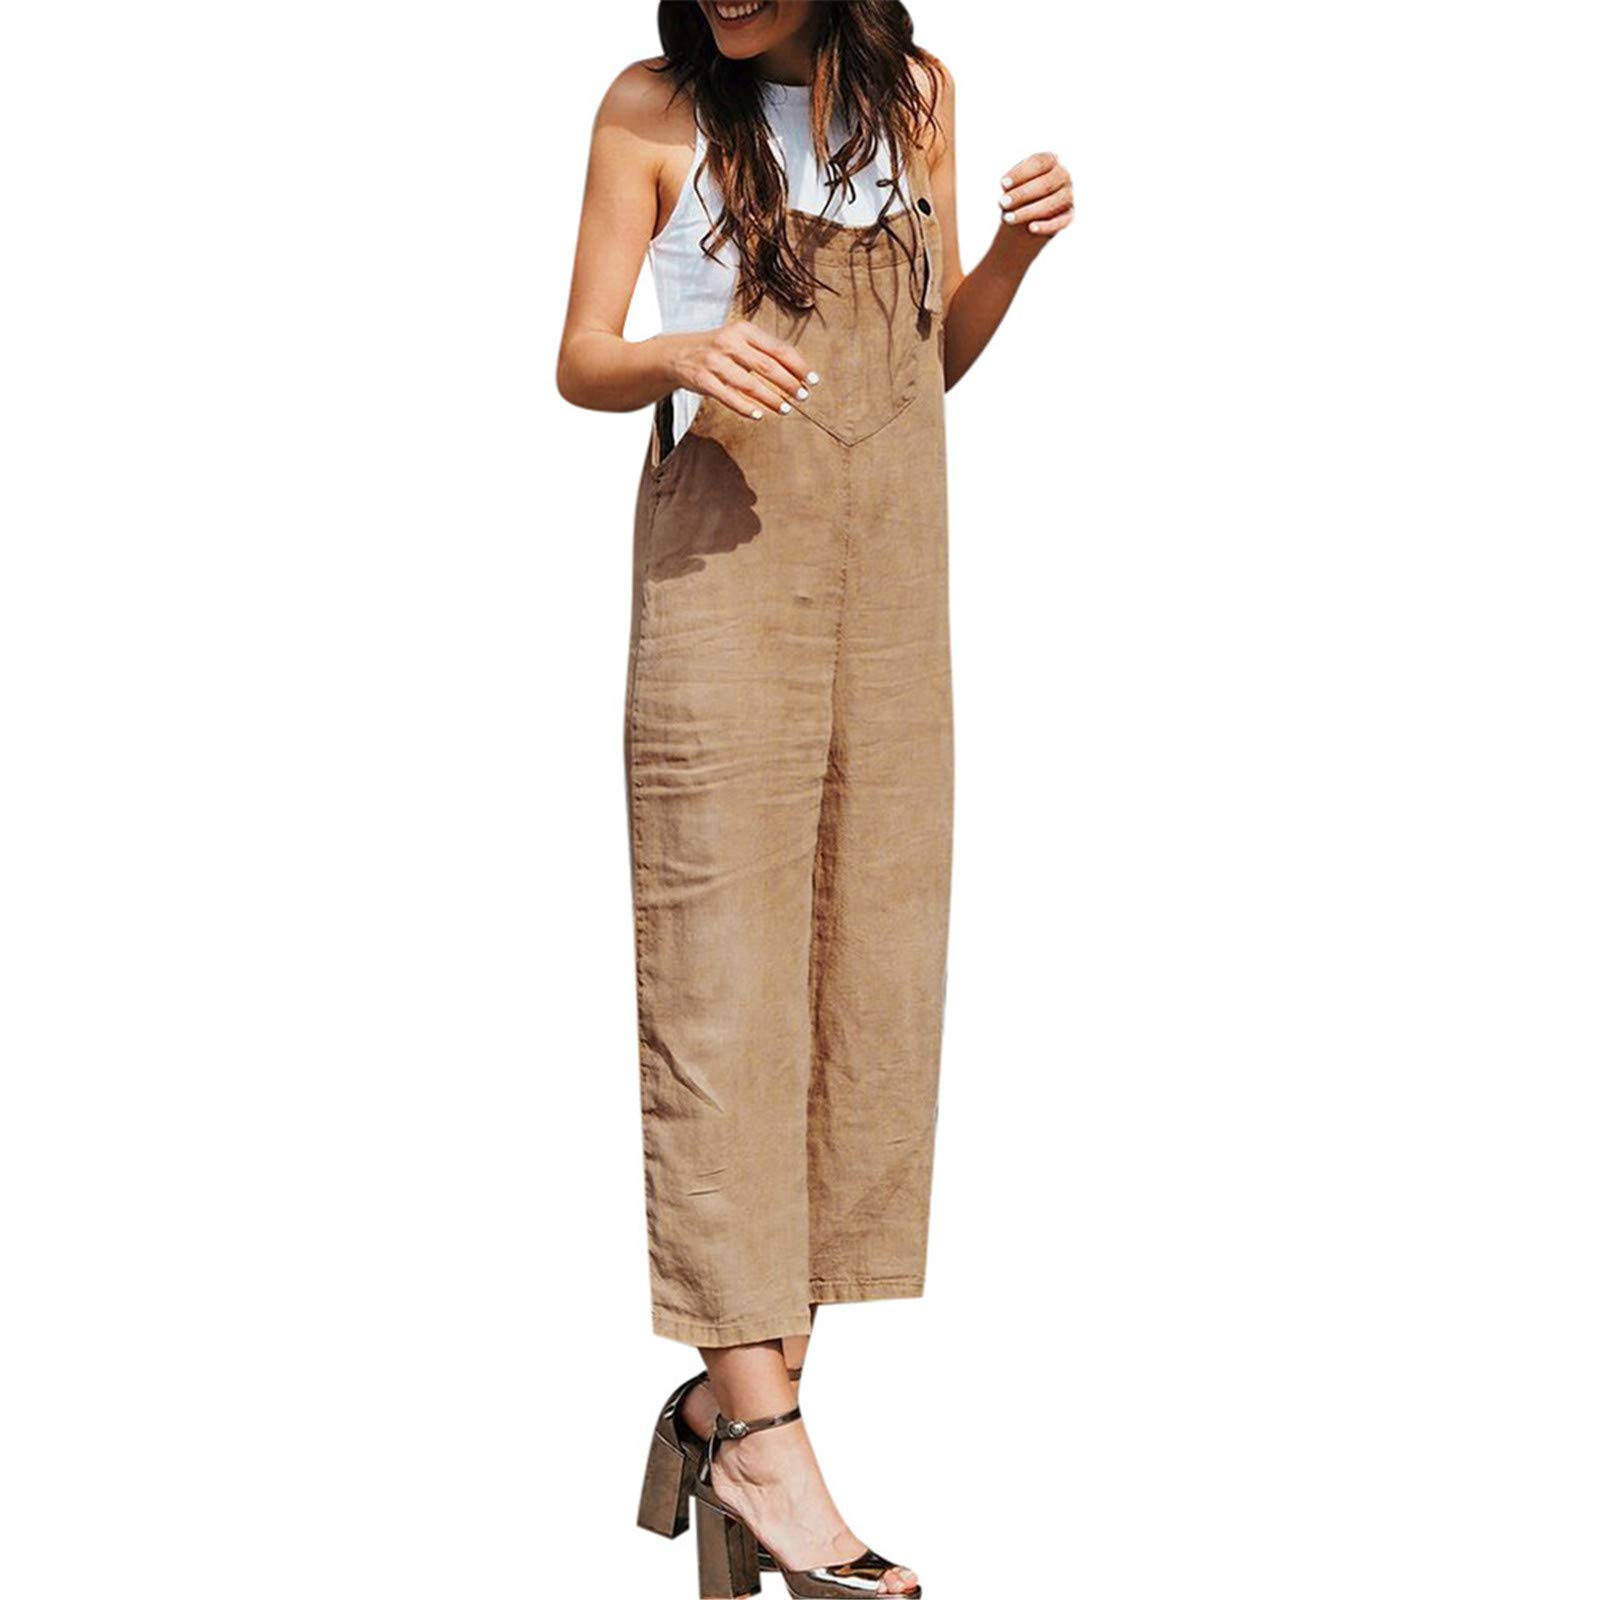 Thenxin Womens Casual Jumpsuits Overalls Solid Color Baggy Bib Pants Plus Size Wide Leg Rompers (Khaki,XL)